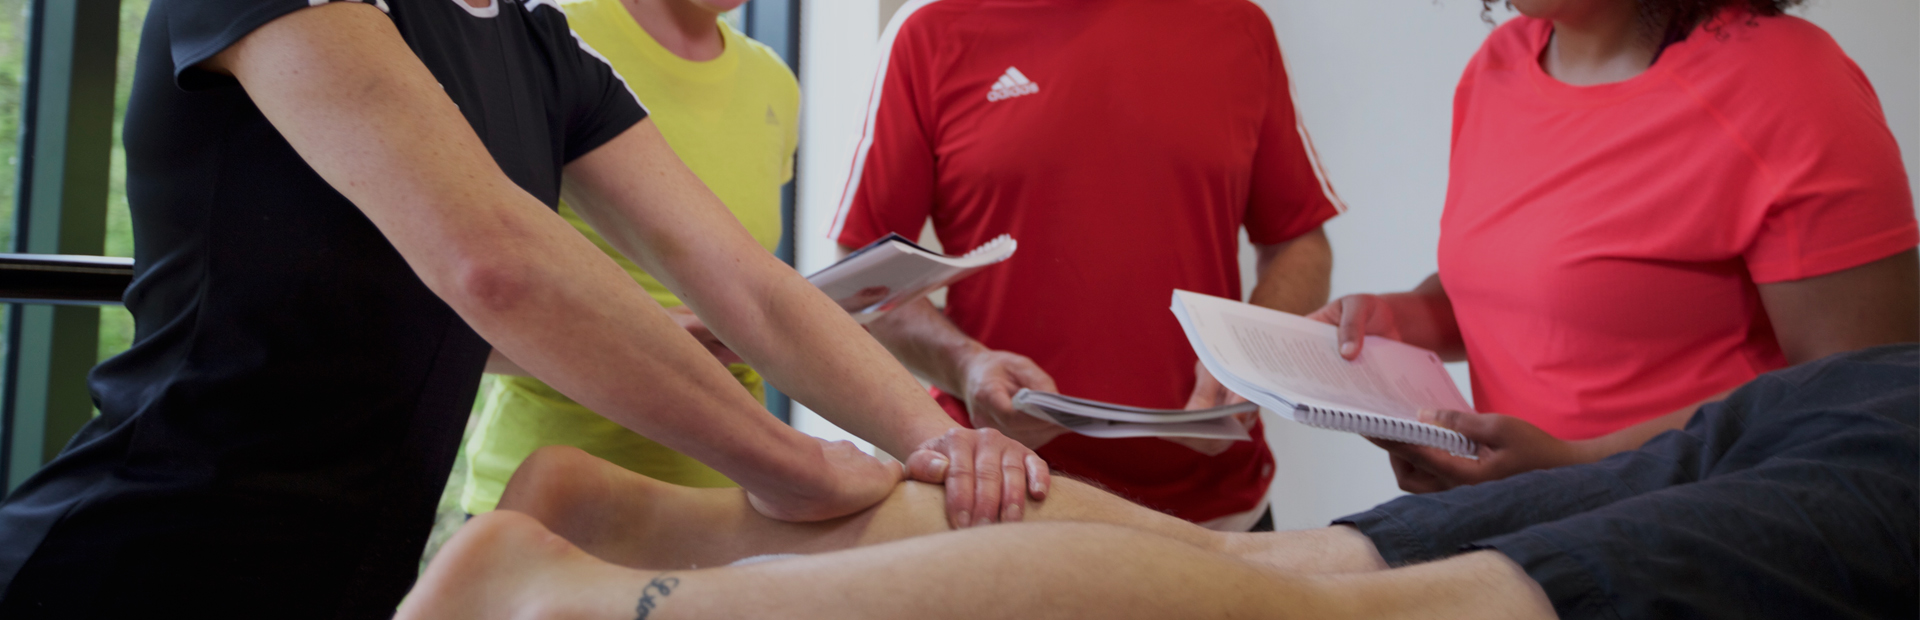 HFE sports massage tutor leads a hand-on session with students